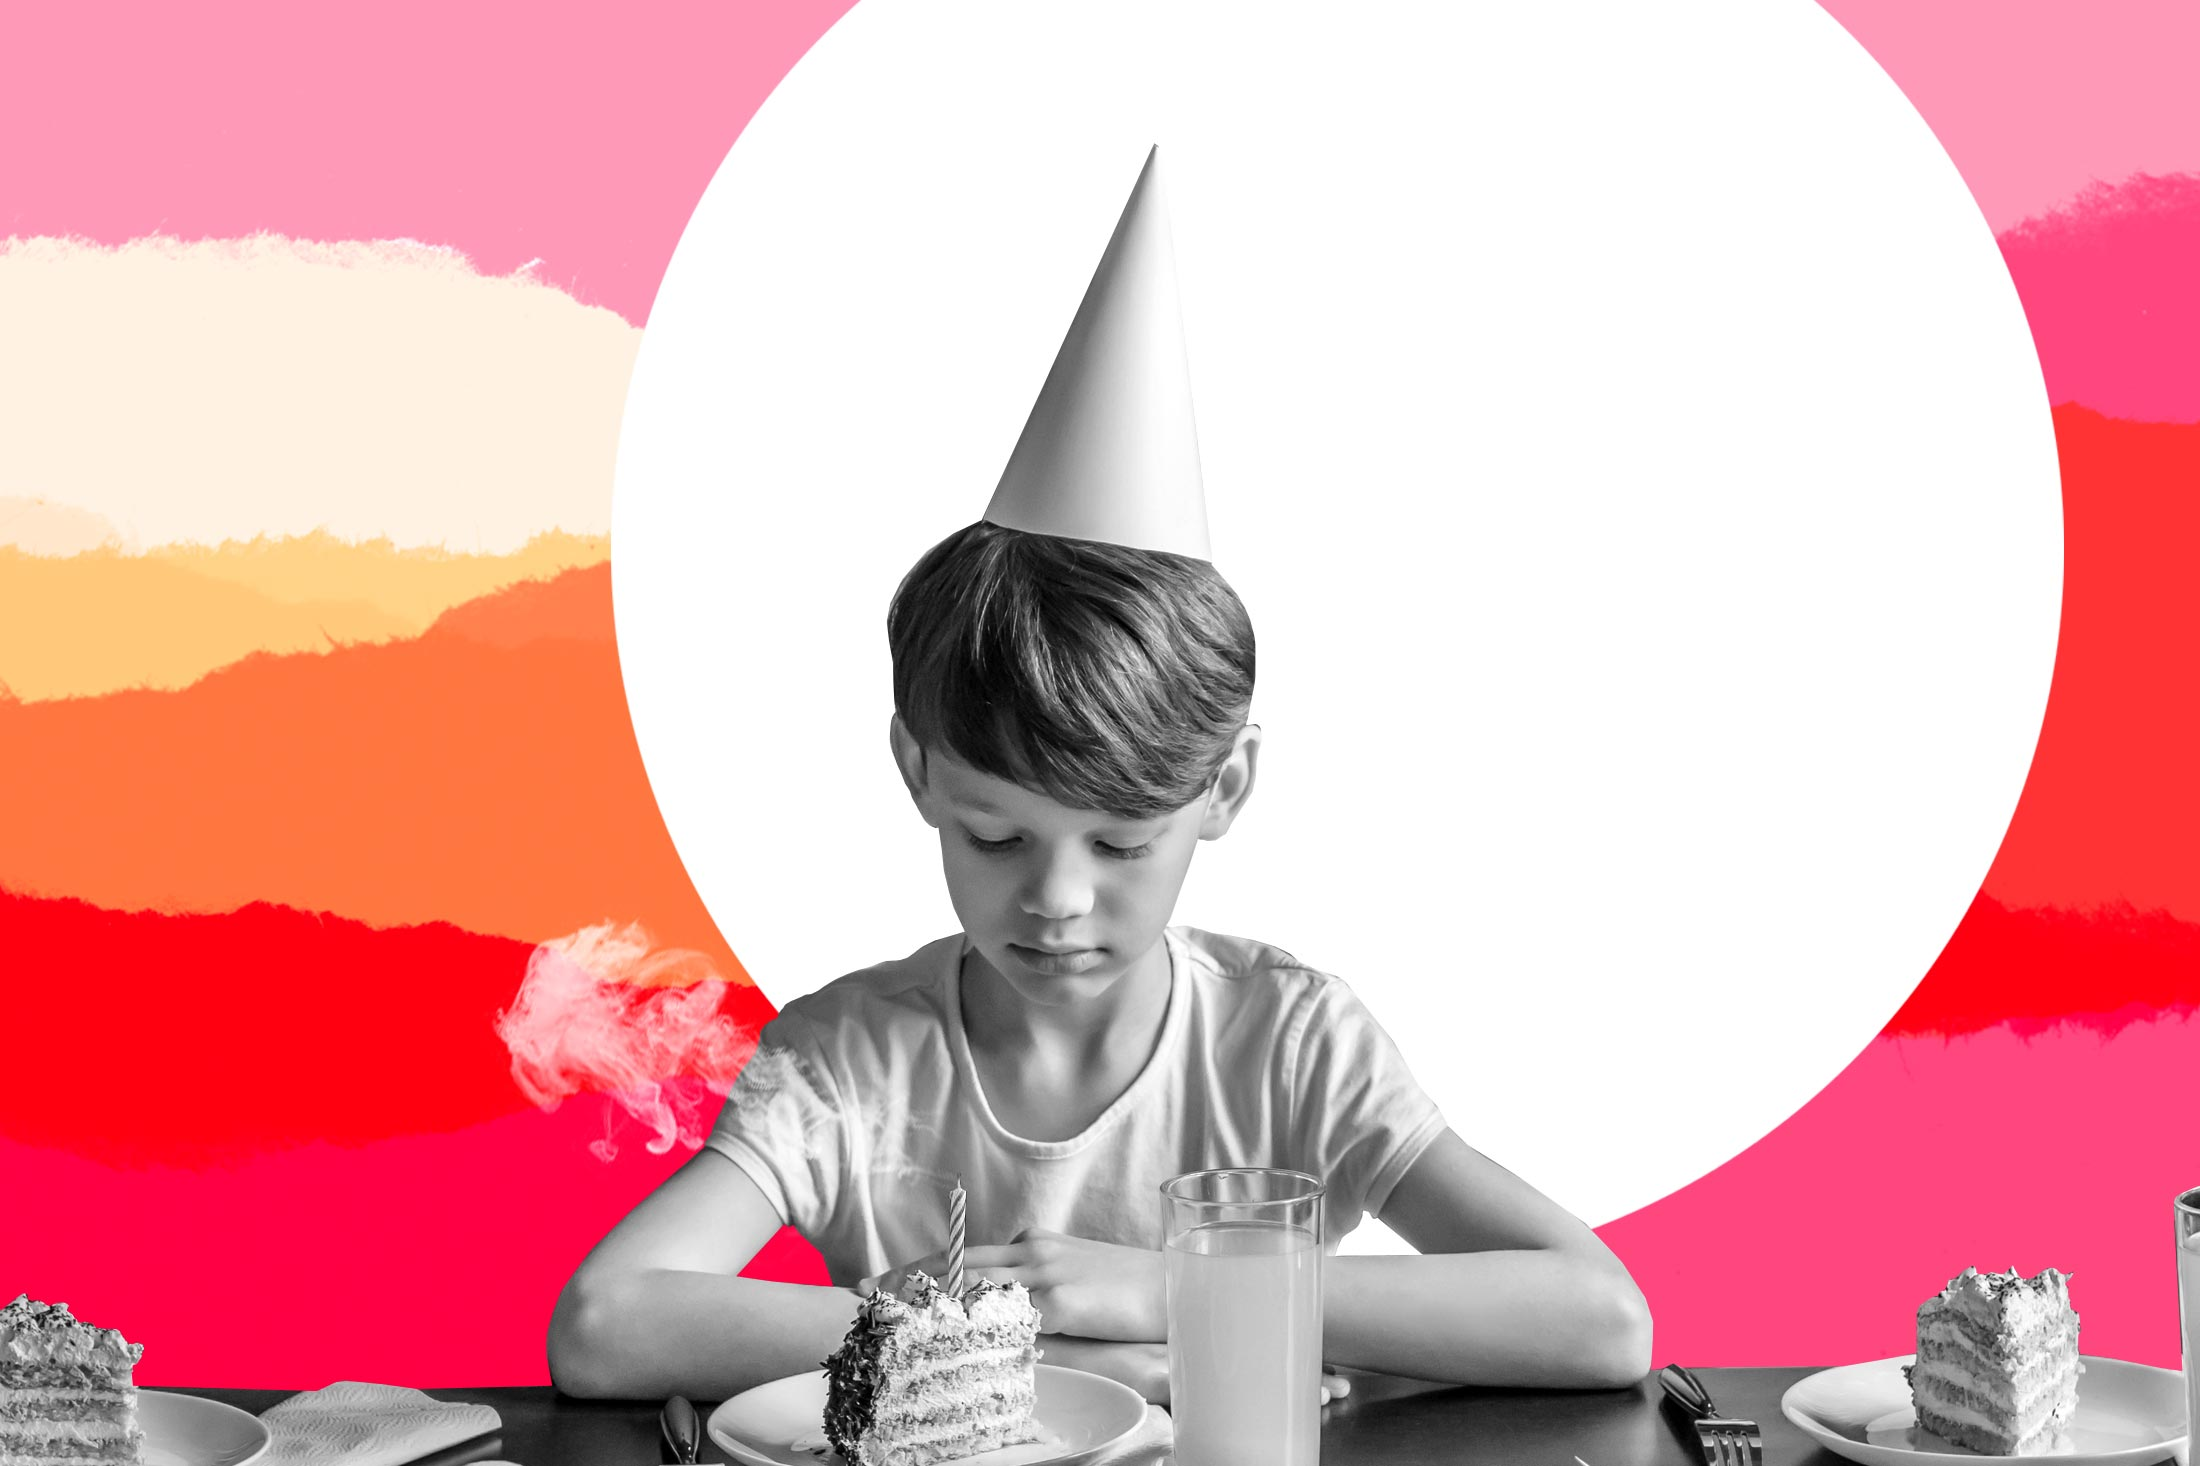 Photo illustration of a boy looking solemnly at a slice of birthday cake.